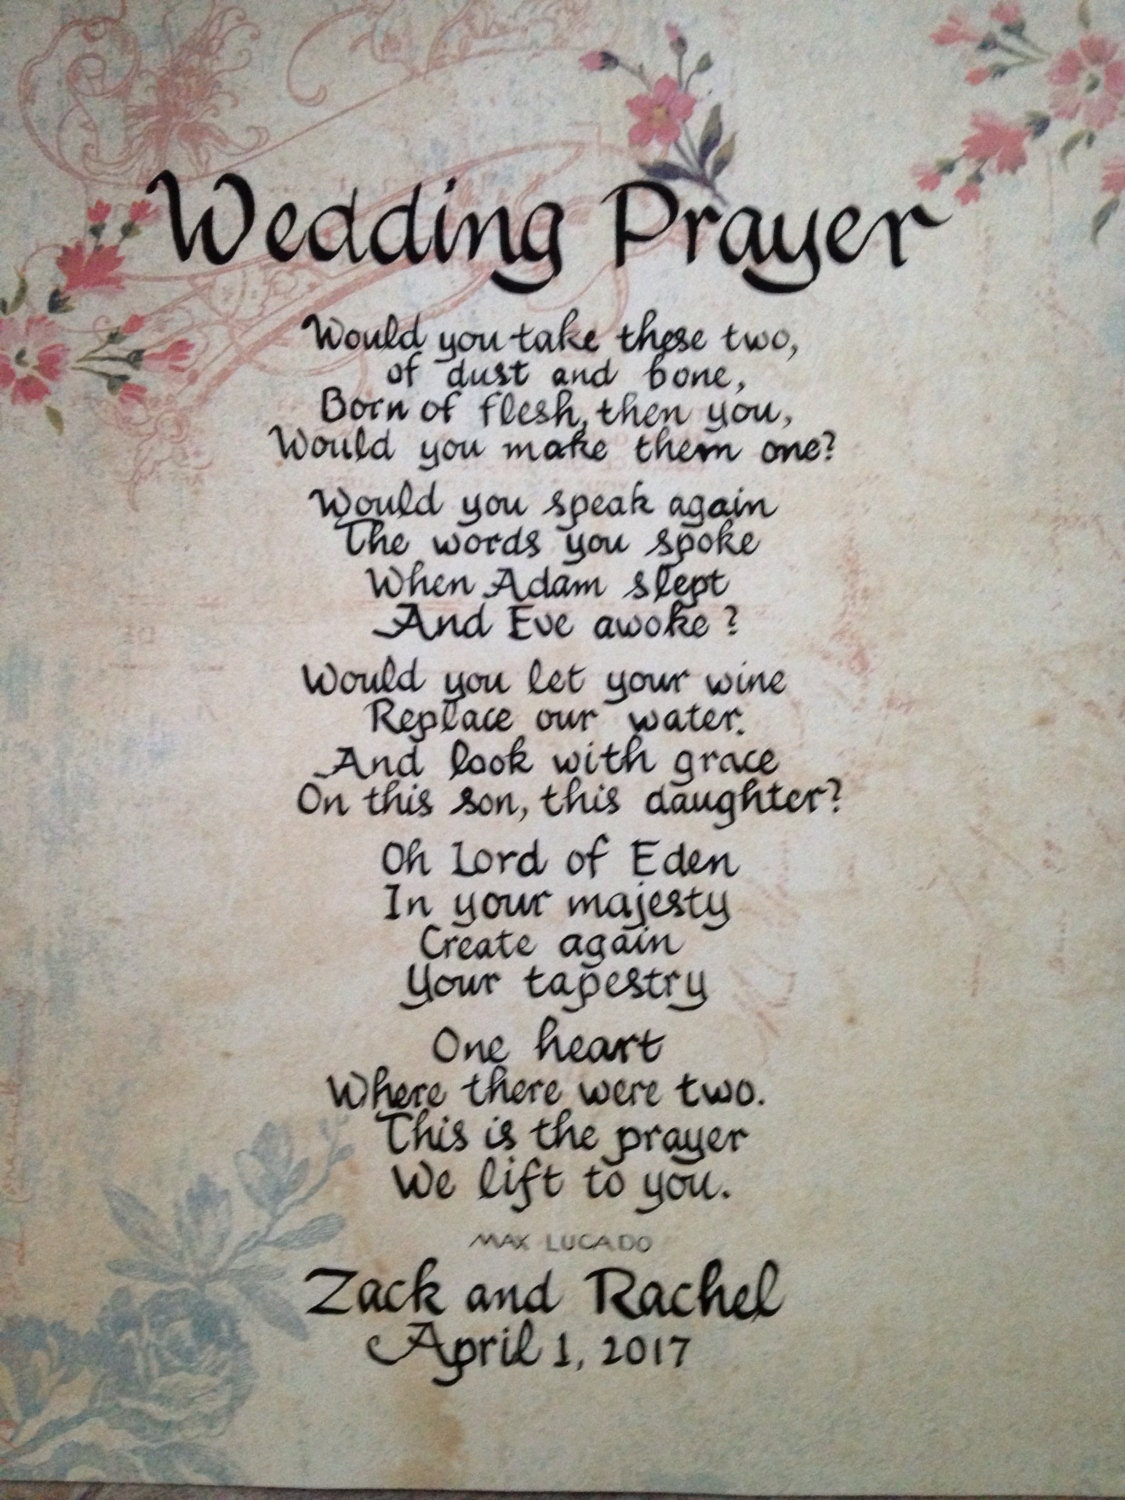 Wedding Prayer Max Lucado Prayer Master Bedroom Decor